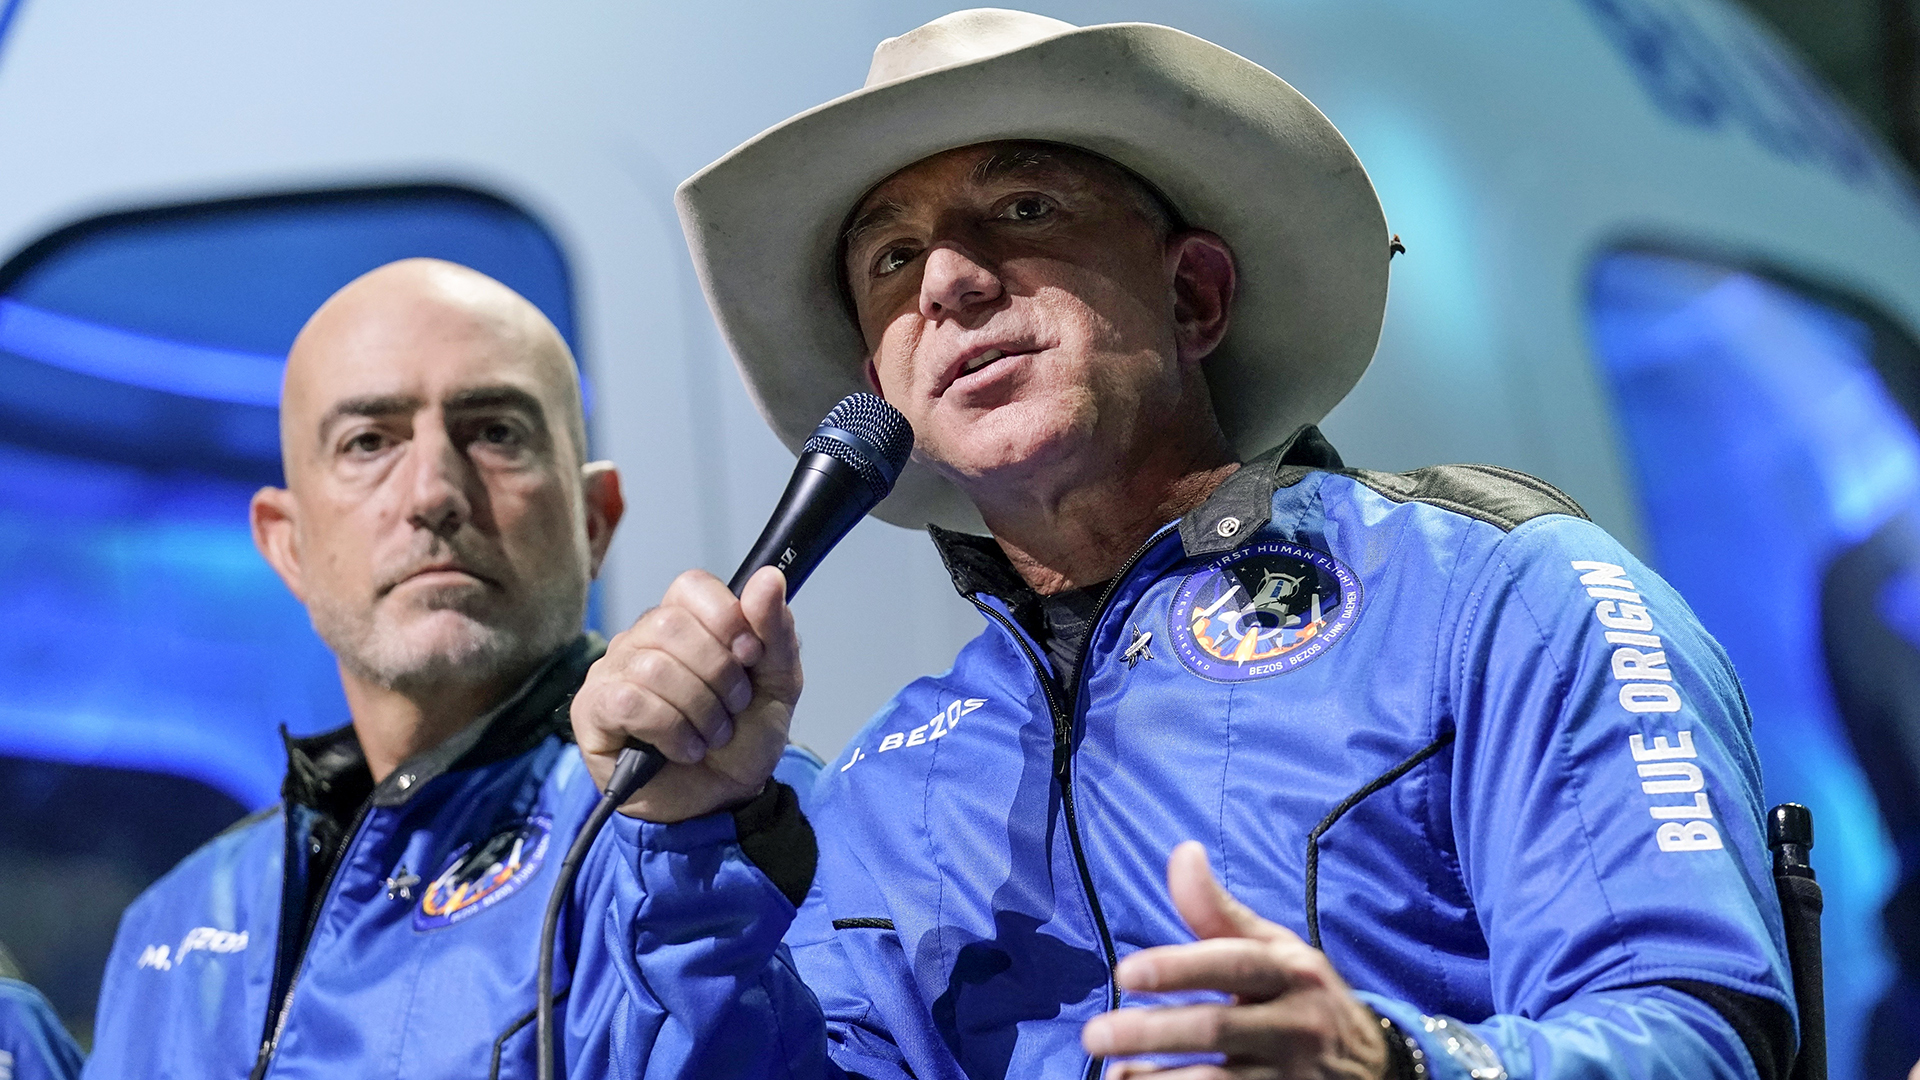 Who's really paying for billionaires to go to space?